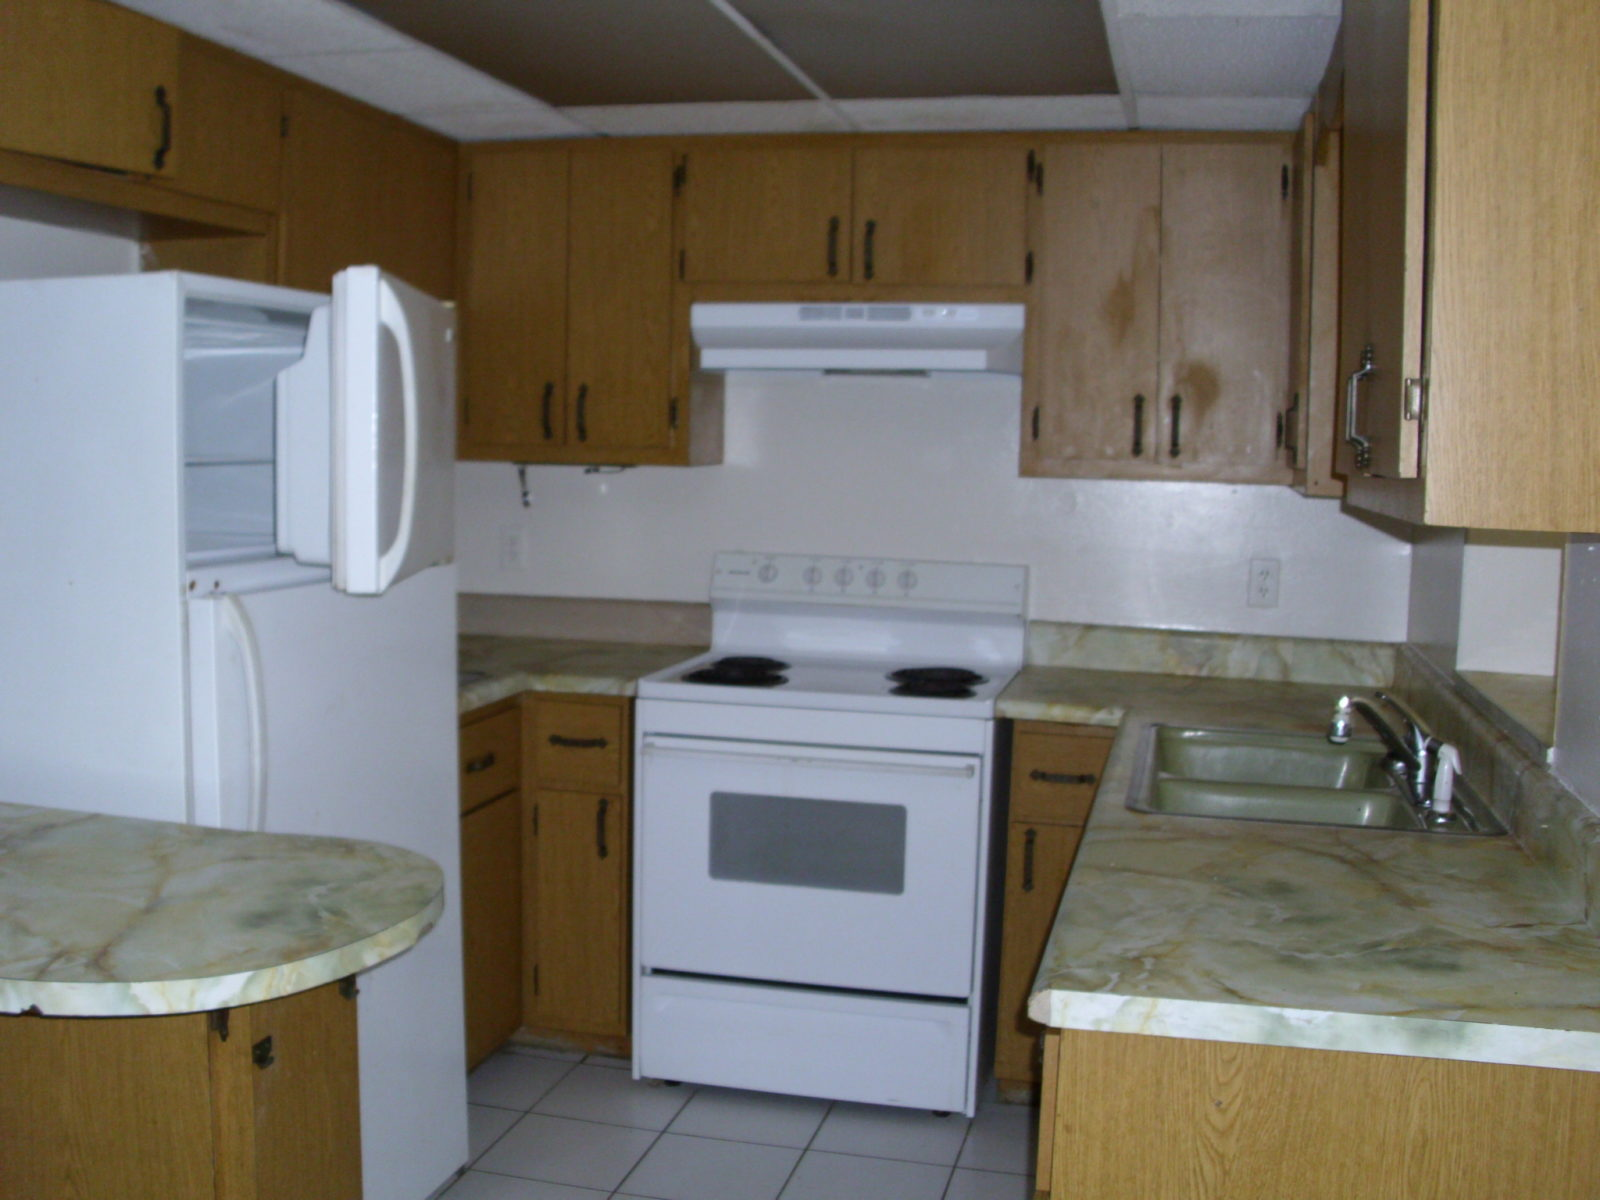 607 a center rd south ft myers  cheap rent usa  save